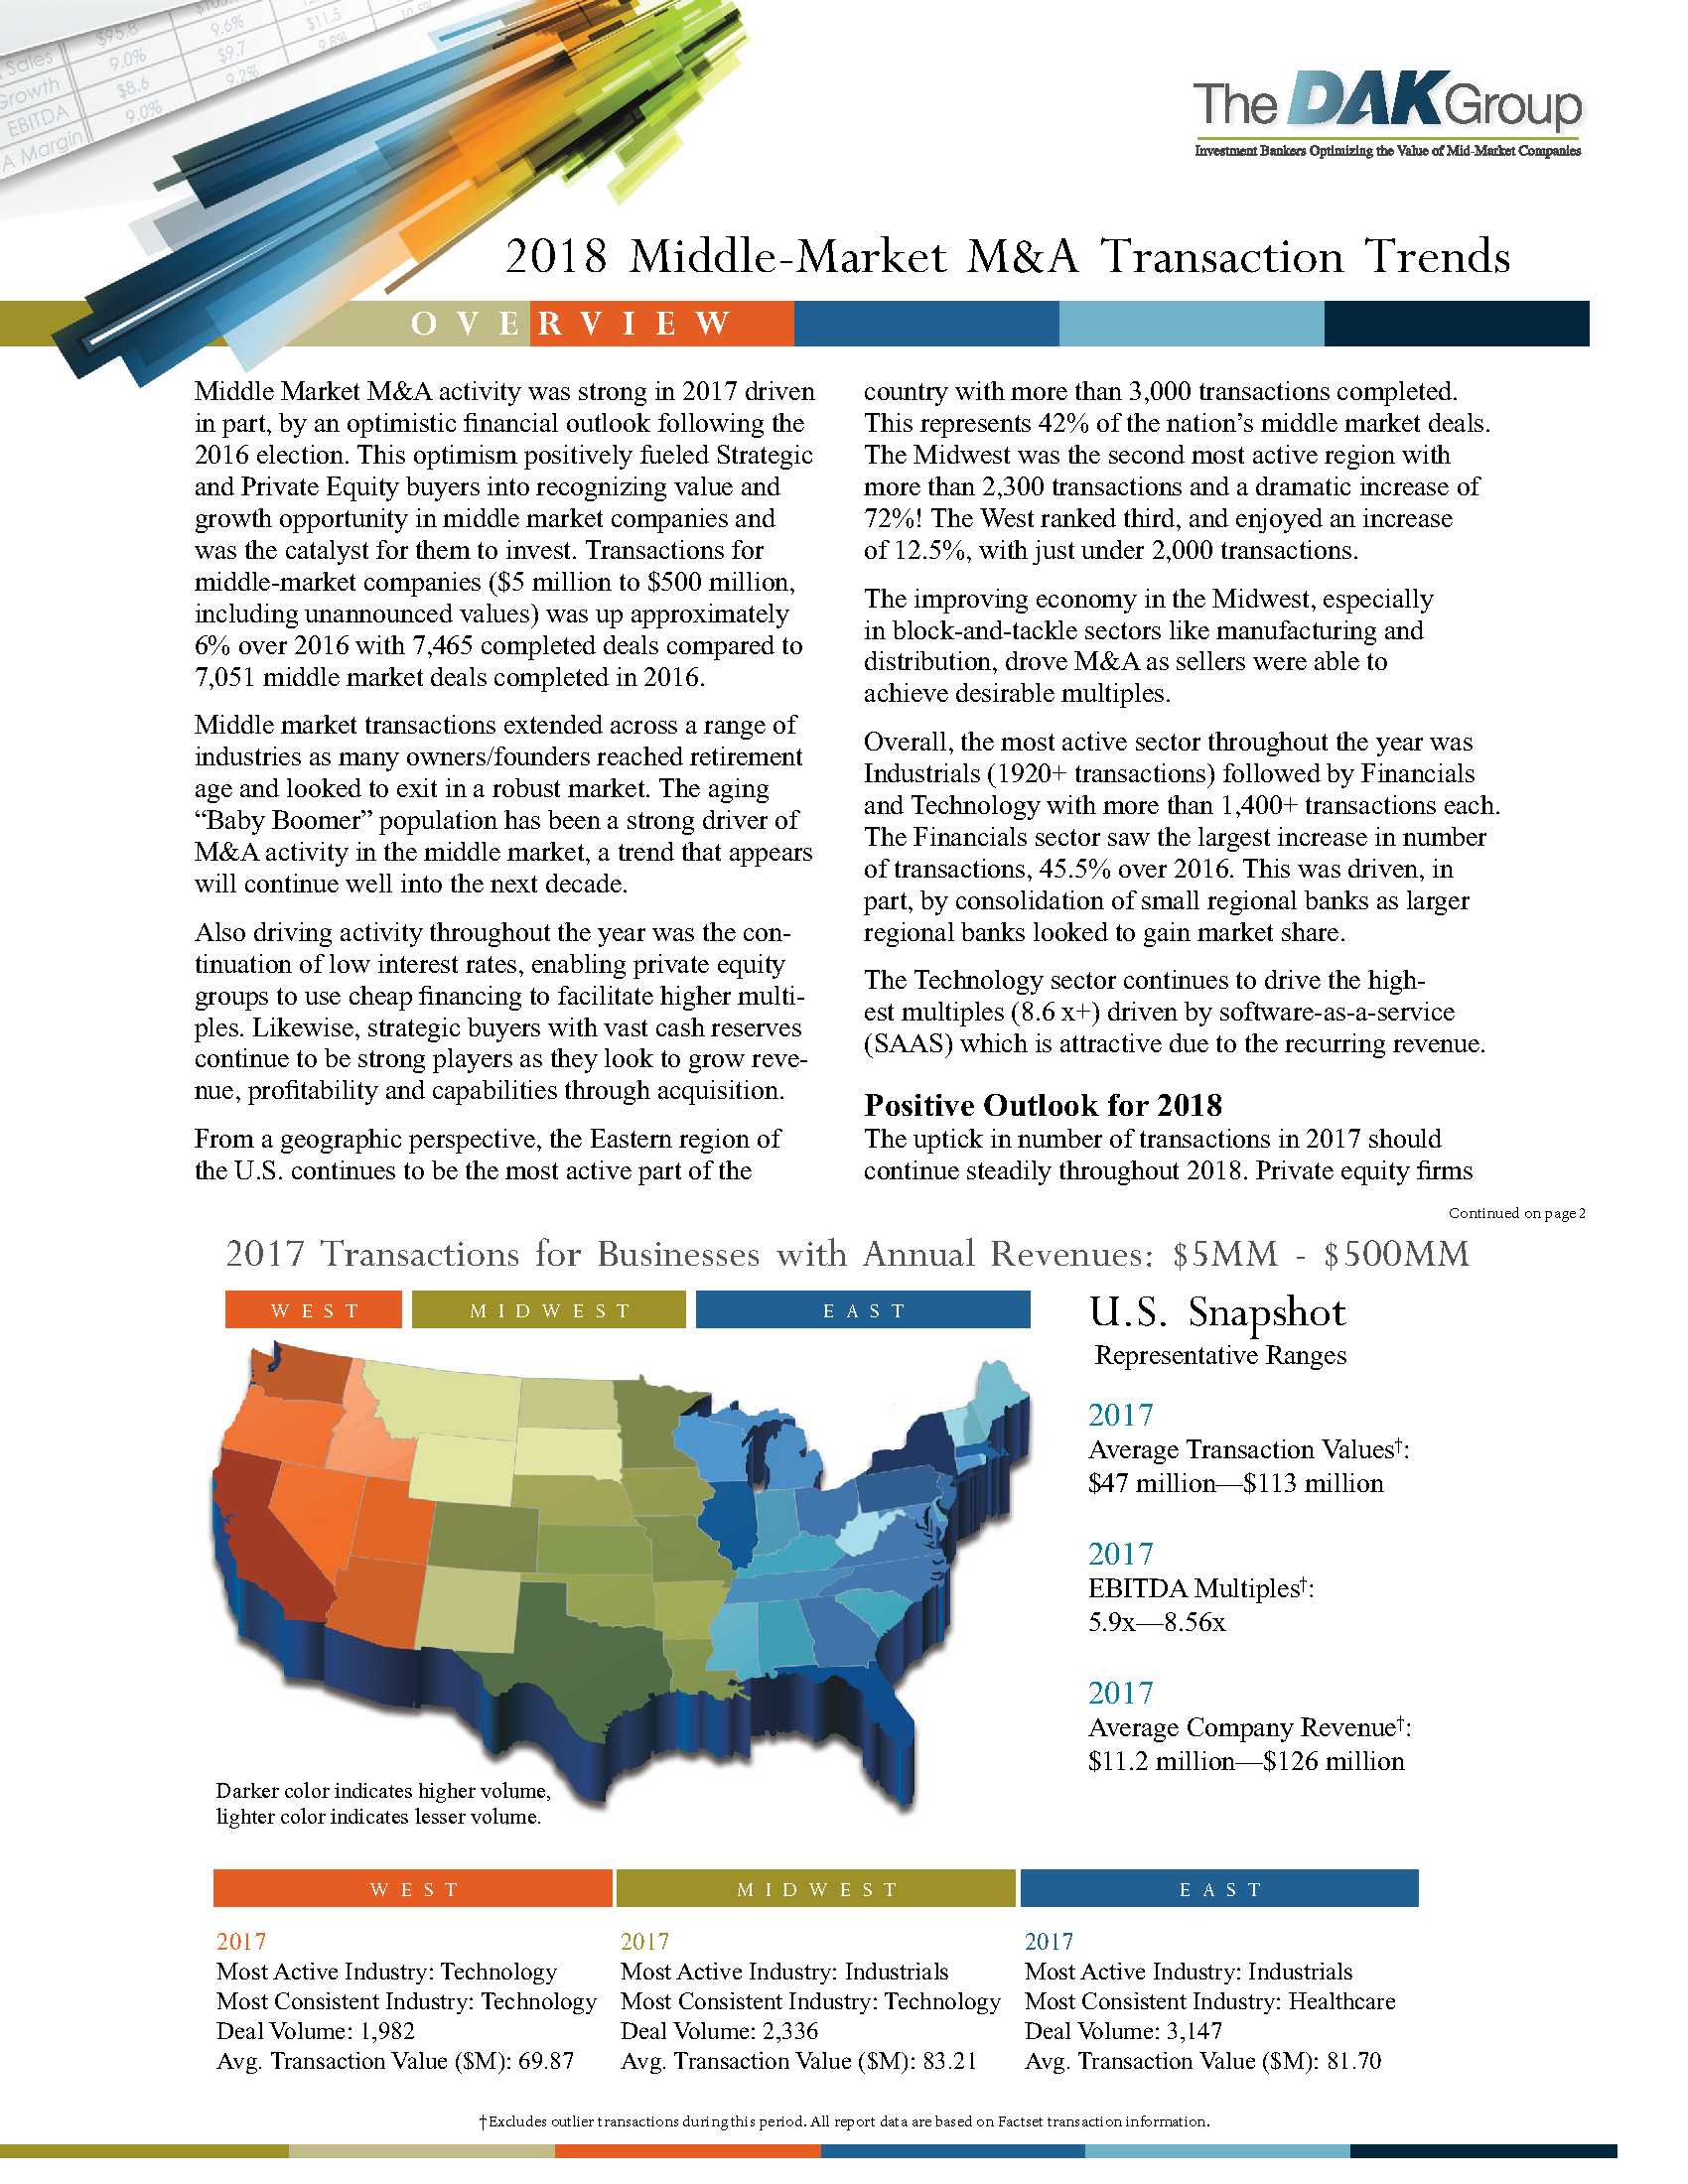 DAK Launches New Report: Middle-Market M&A Transaction Trends 2018